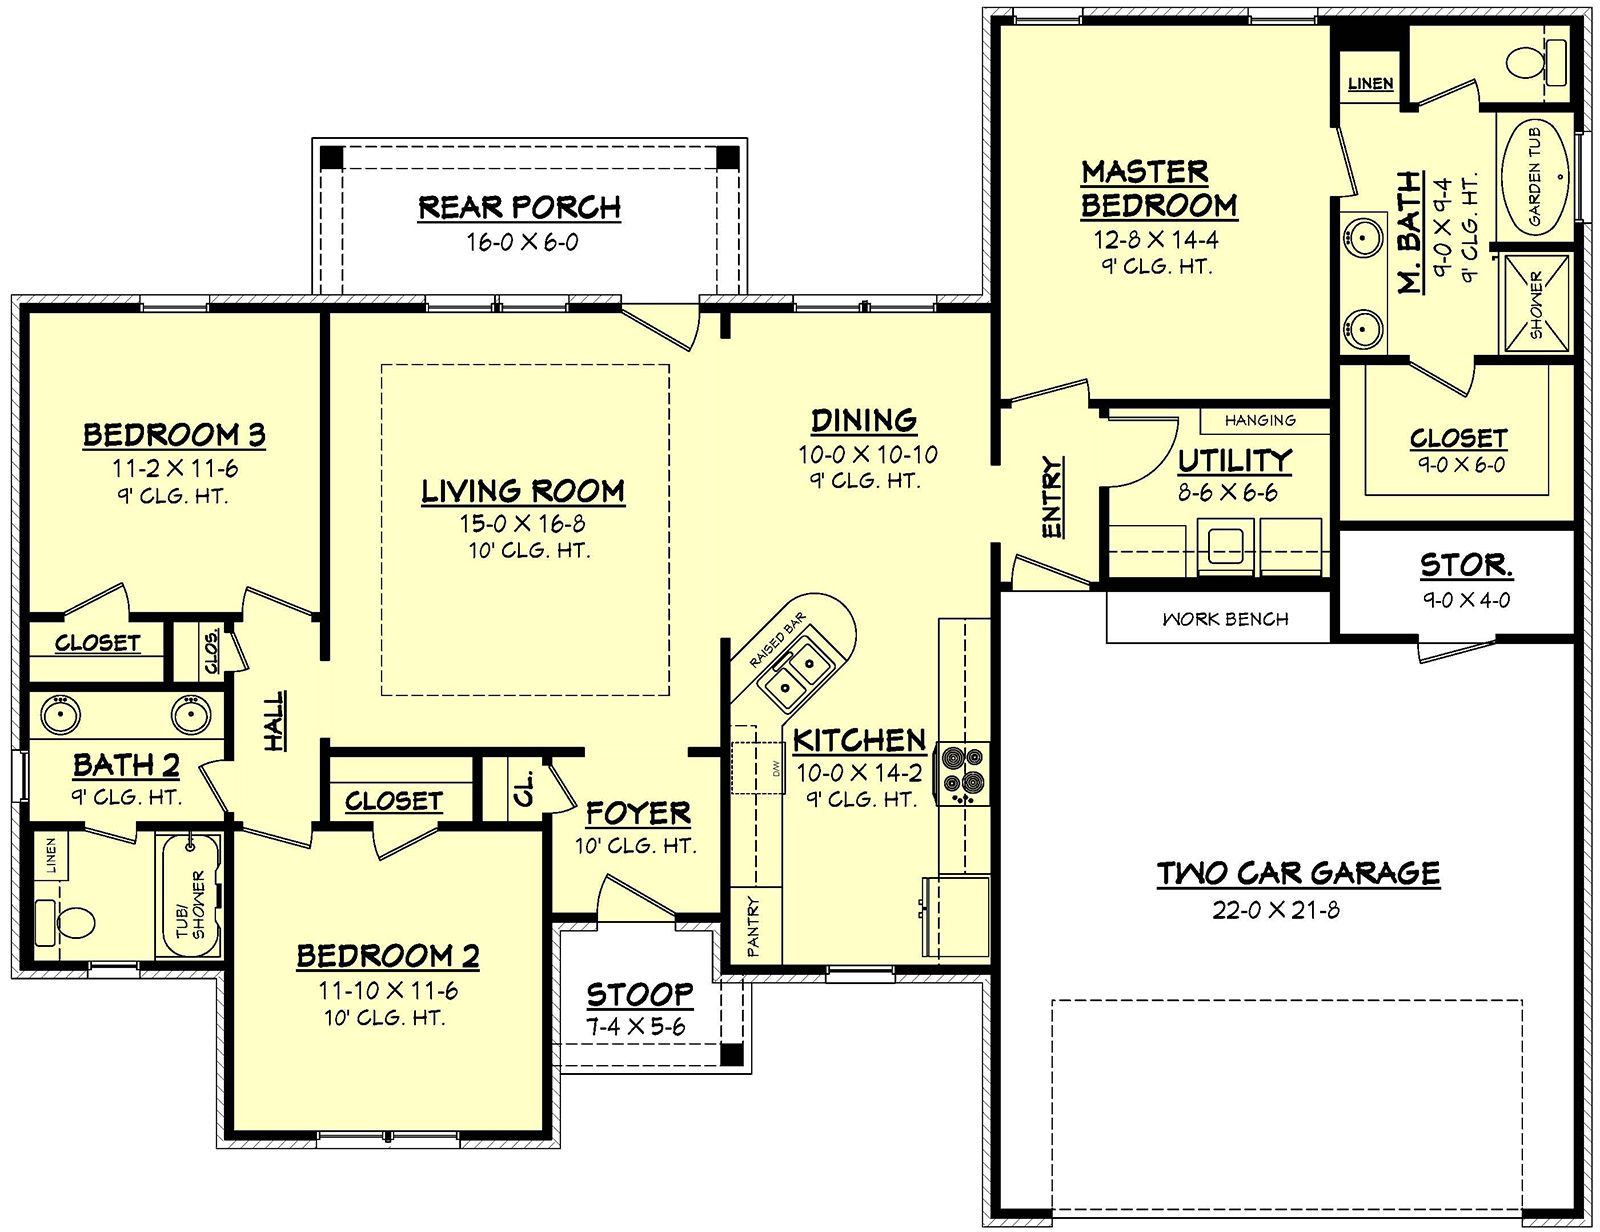 European Style House Plan 3 Beds 2 Baths 1500 Sq Ft Plan 430 62 With Images Bedroom House Plans House Layouts Acadian House Plans